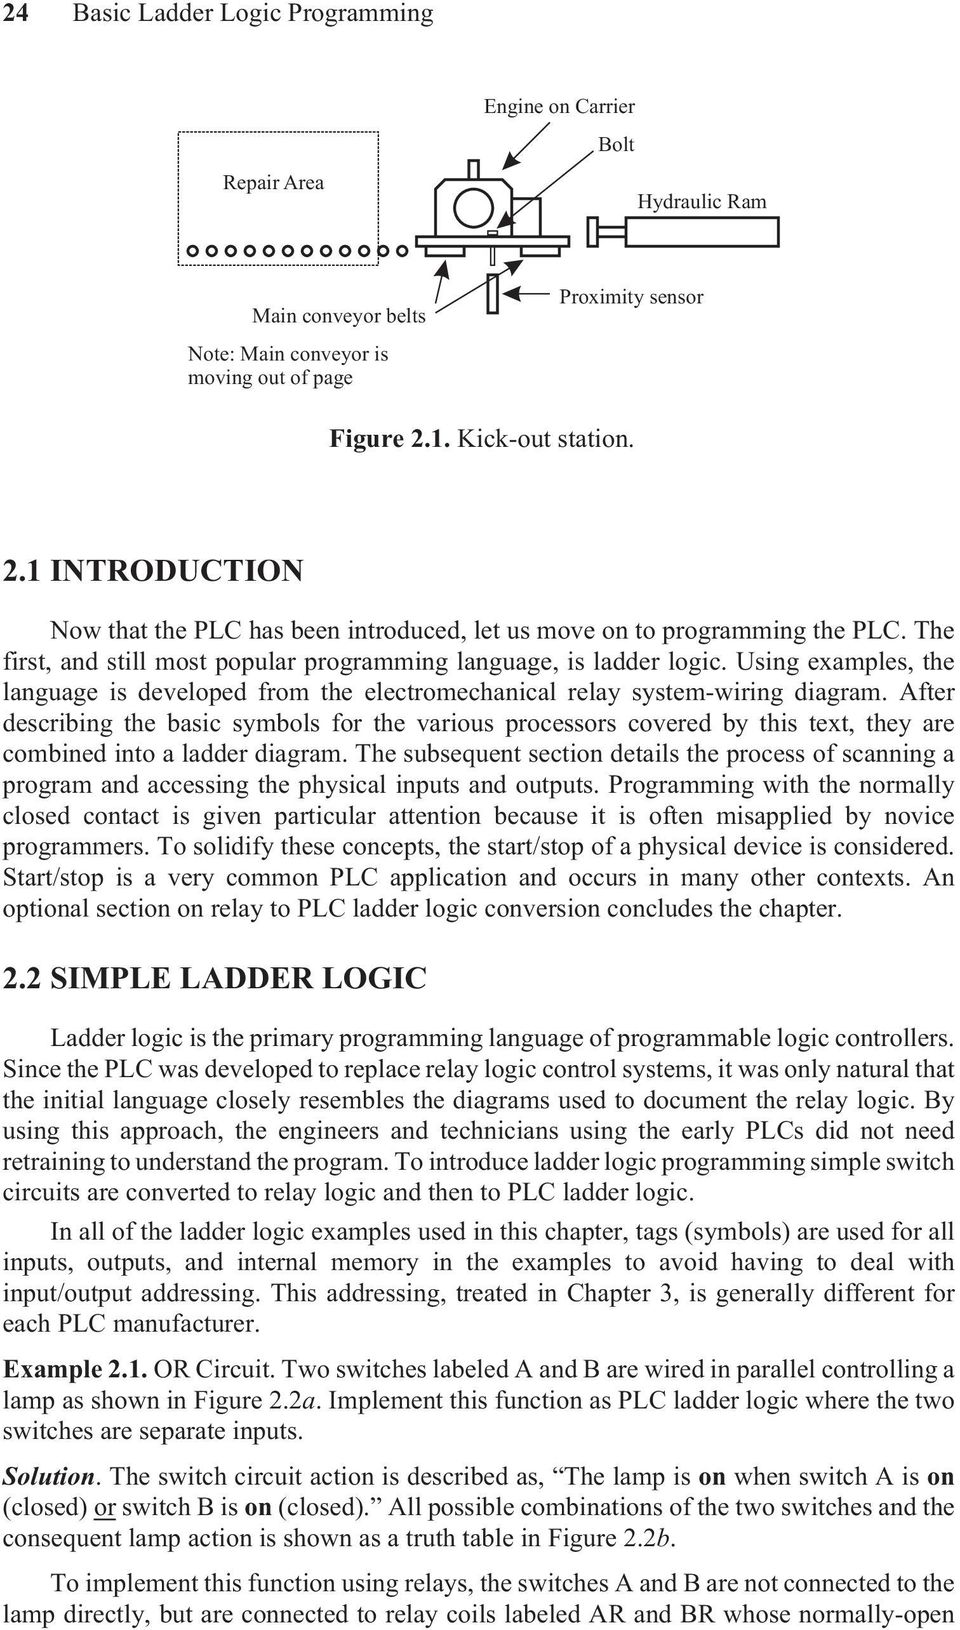 2 Basic Ladder Logic Programming Pdf Wiring Diagram Using Examples The Language Is Developed From Electromechanical Relay System